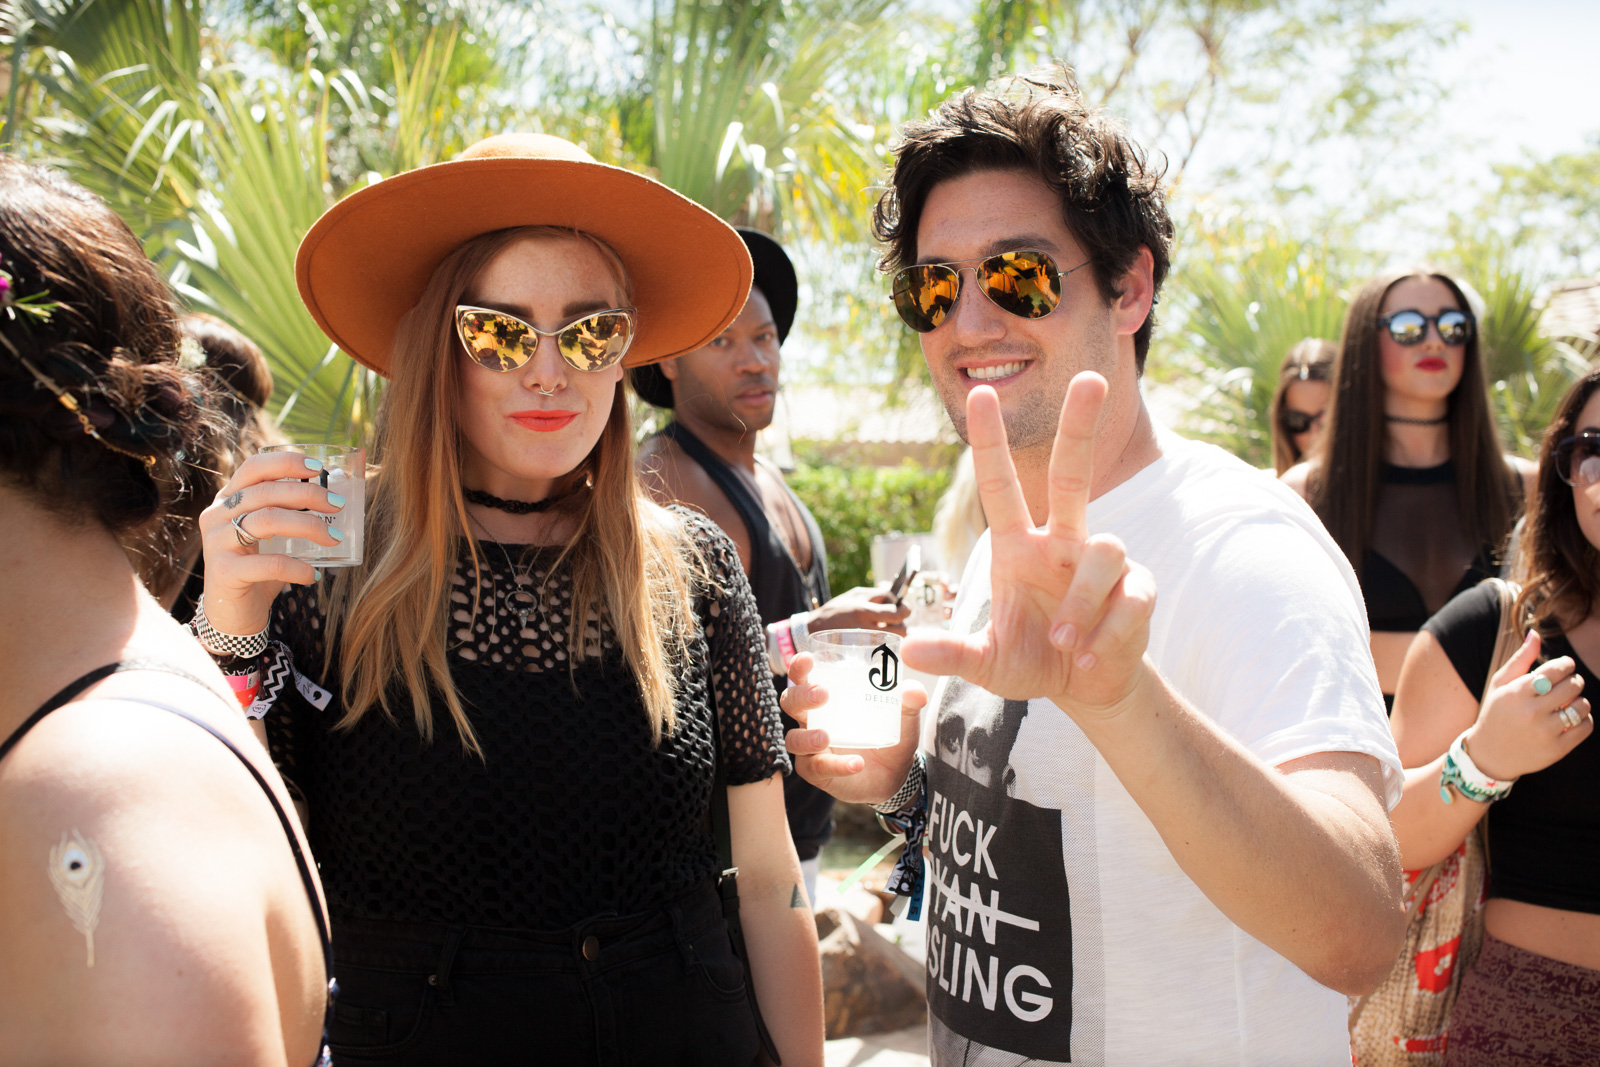 Coachella 2015 Pool Party hosted by Interview Magazine x Desert Compound Pool Party & BBQ - with Wildfox and beGLAMMED - DJ LOL A LANGUSTA, KITTY CASH, YOUNG LORD, Performance by KALI UCHIS on April 11, 2015 in Bermuda Dunes, California.